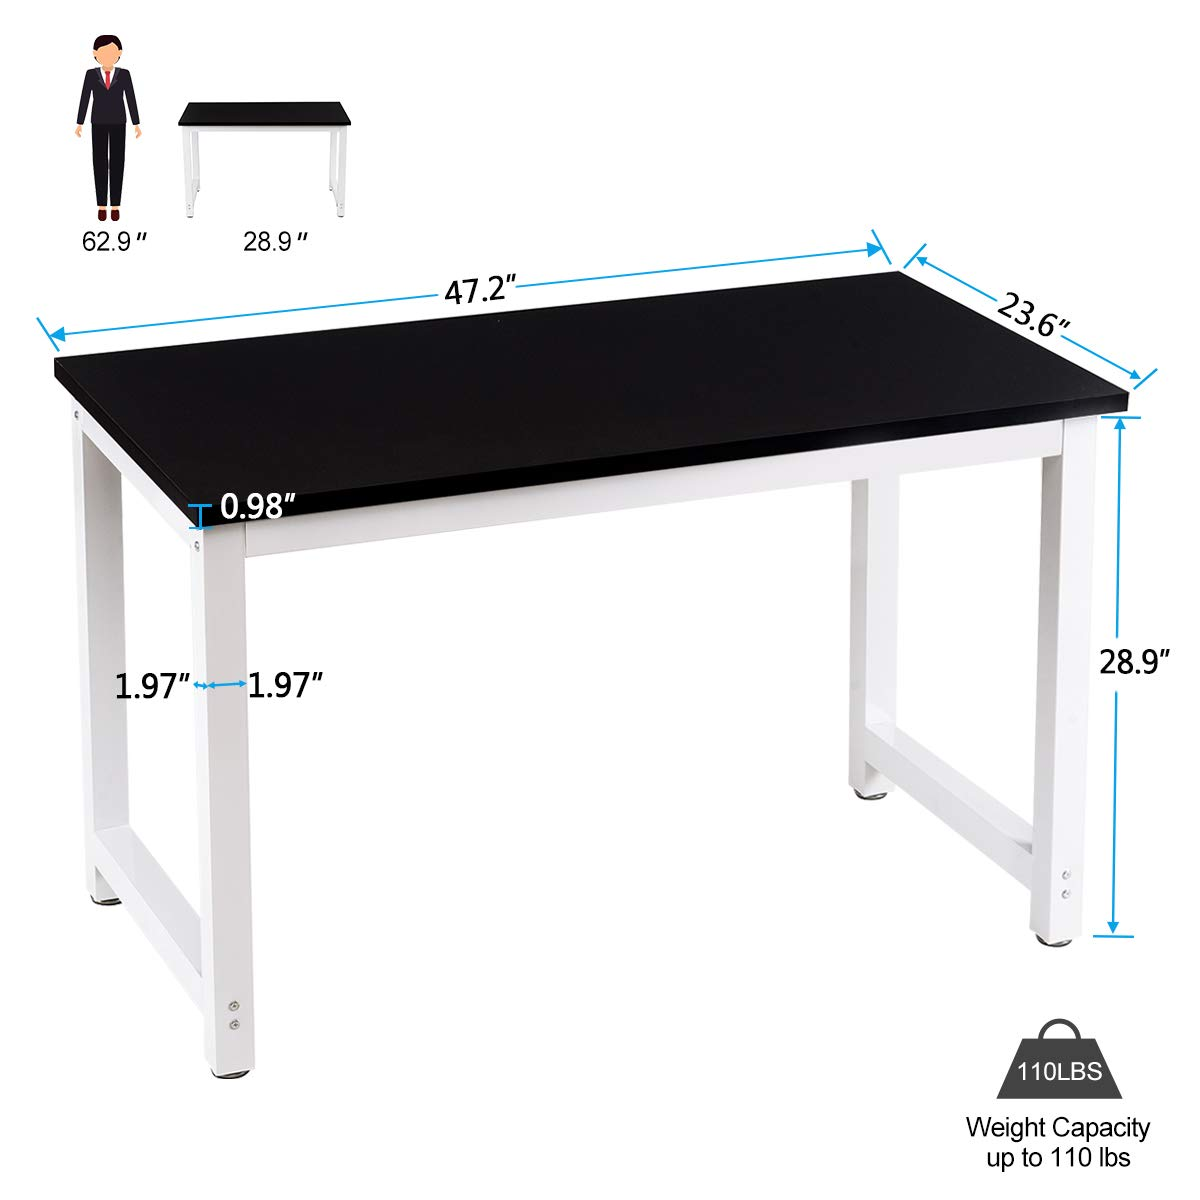 Toolsempire 47'' Office Computer Desk PC Laptop Dining Table Workstation Study Writing Desk for Home Office Furniture (Black) by Toolsempire (Image #6)